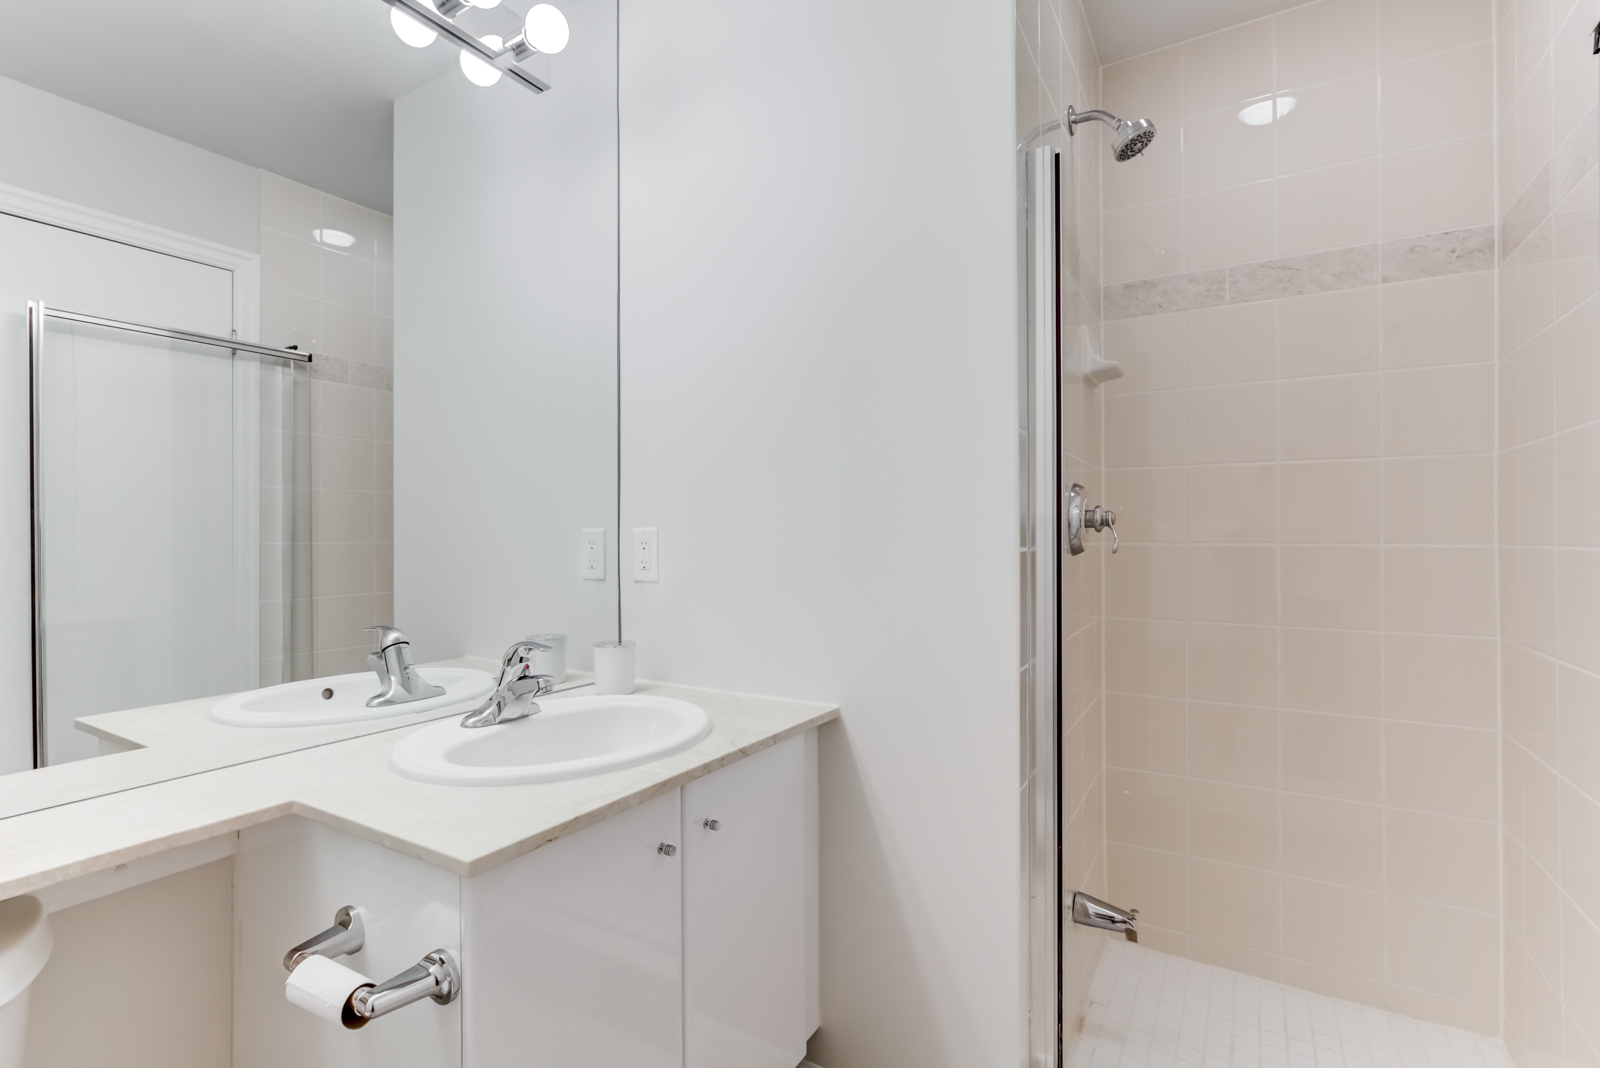 Small bathroom with walk-in shower, chrome fixtures, beige tiles and white counter-tops.